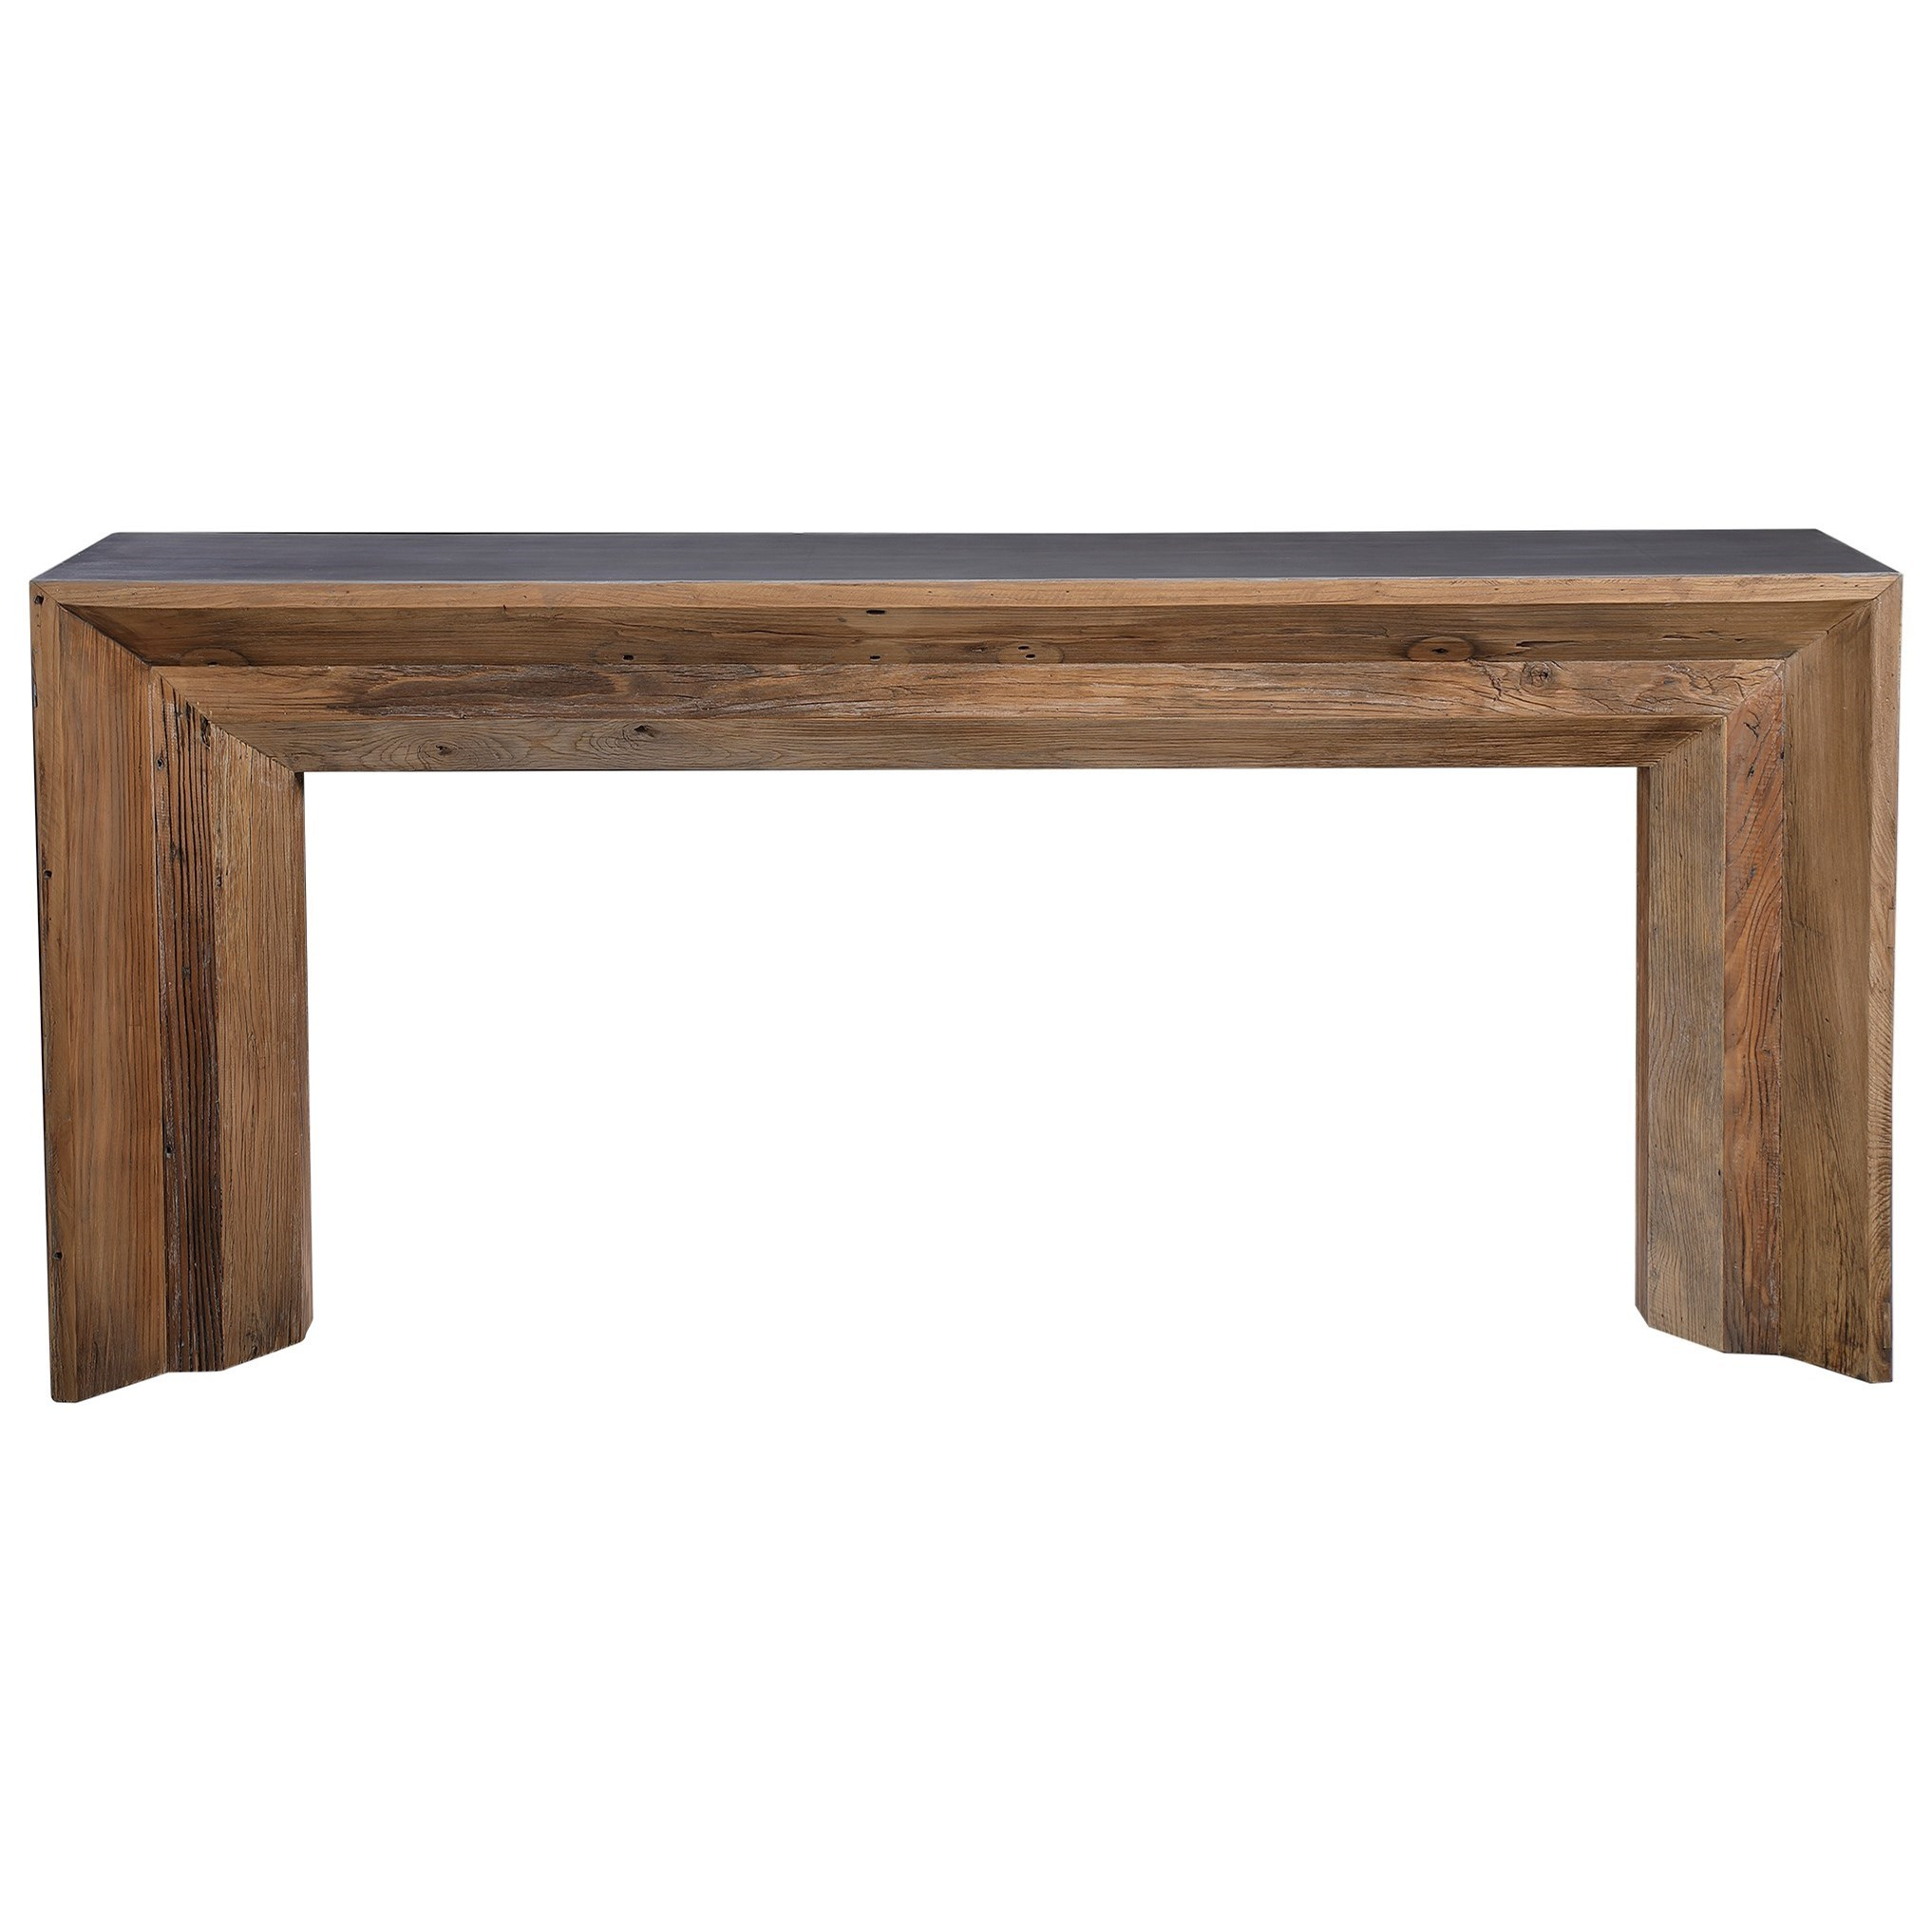 Accent Furniture - Occasional Tables Vail Reclaimed Wood Console Table by Uttermost at Mueller Furniture